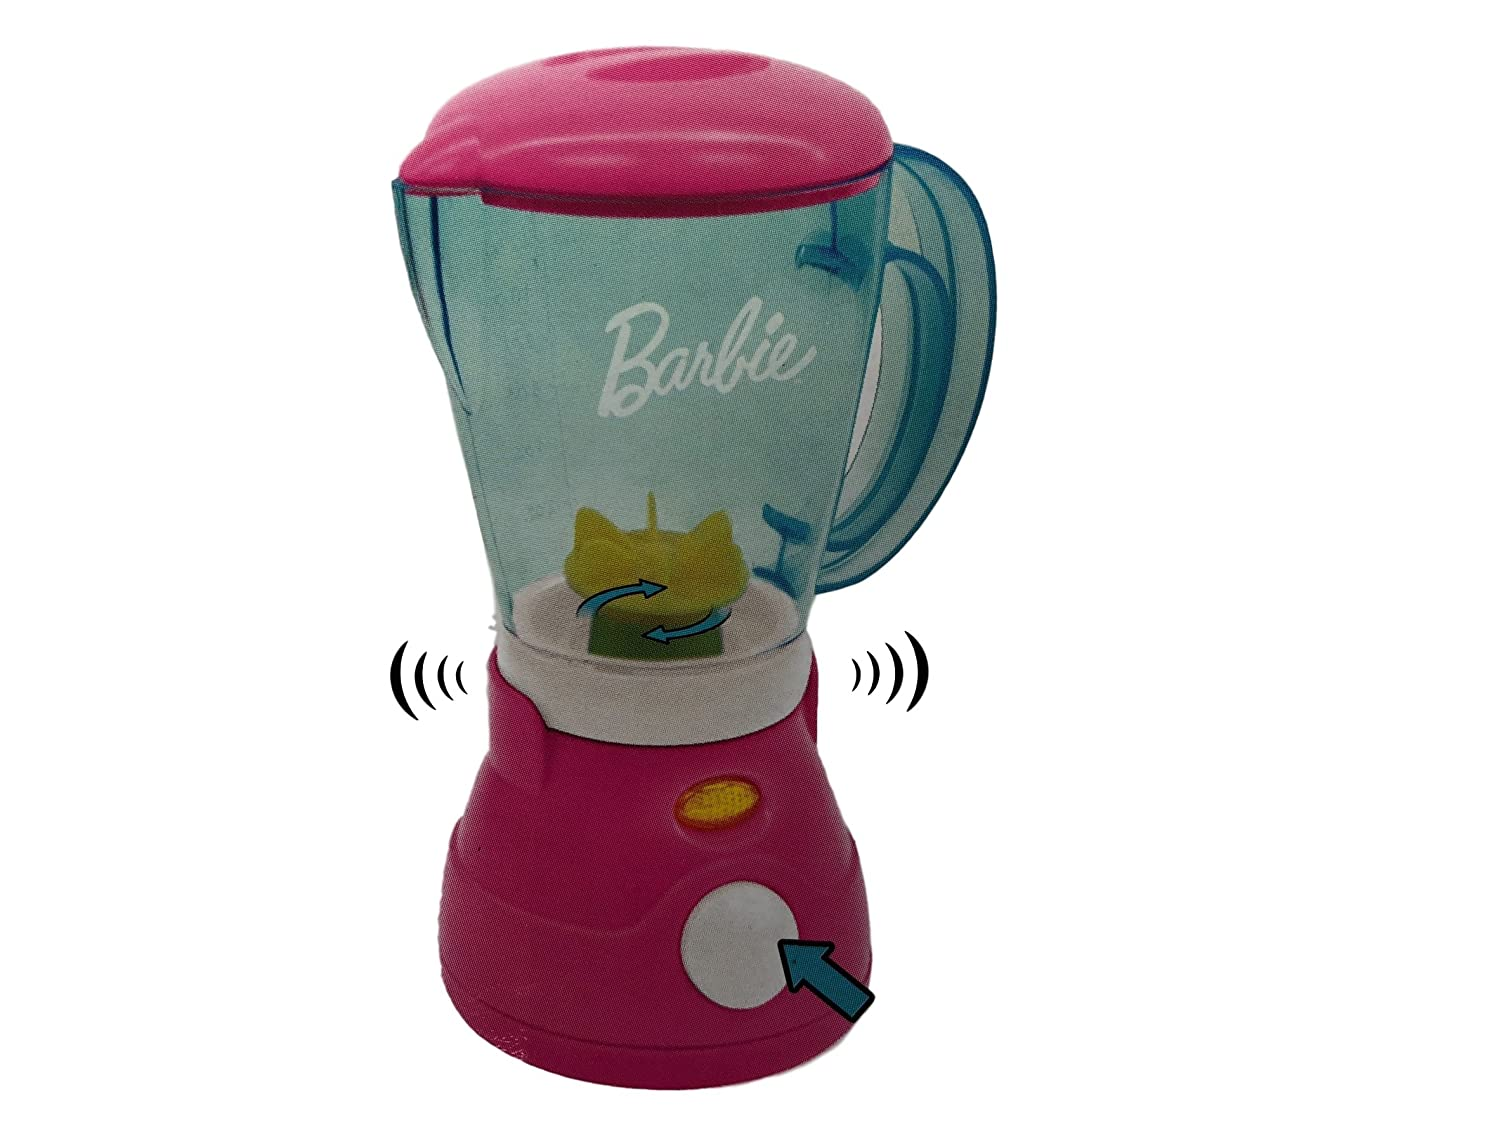 Amazon.com: Barbie Mixer and Blender Kitchen Appliance Play Set Toys ...